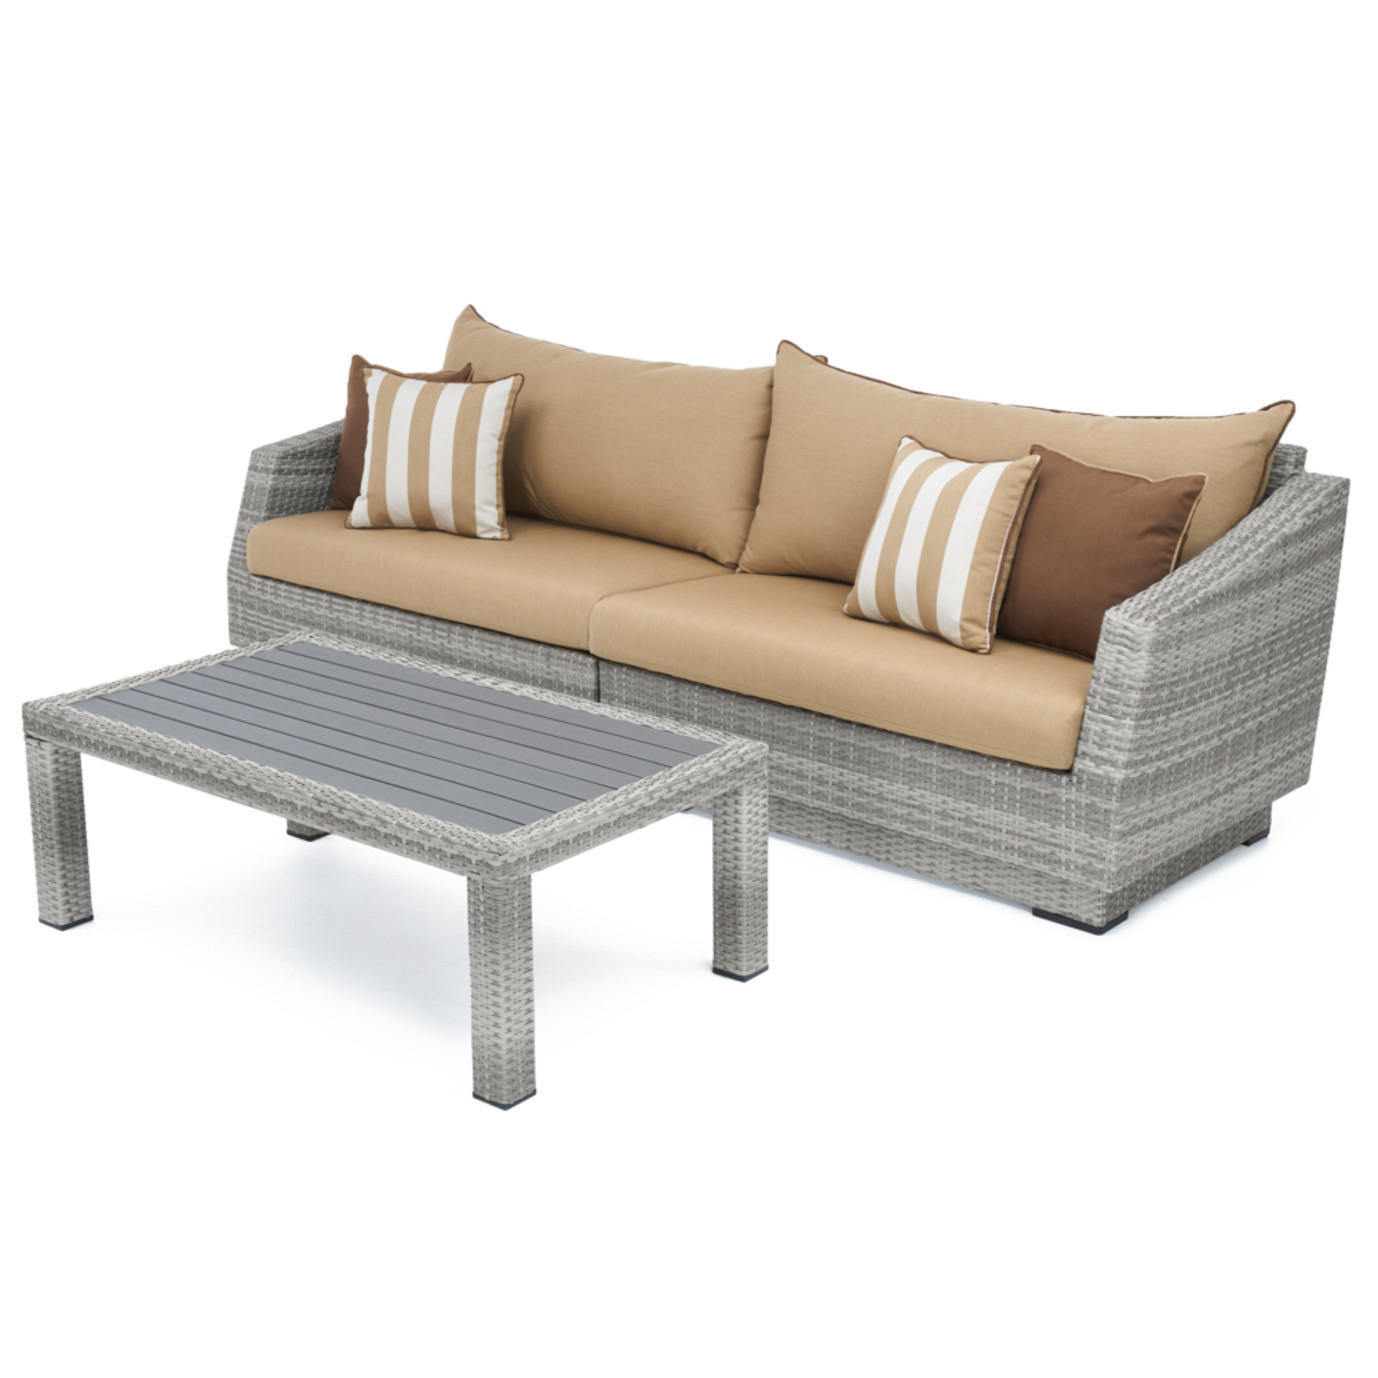 Cannes™ Sofa & Deluxe Coffee Table - Maxim Beige